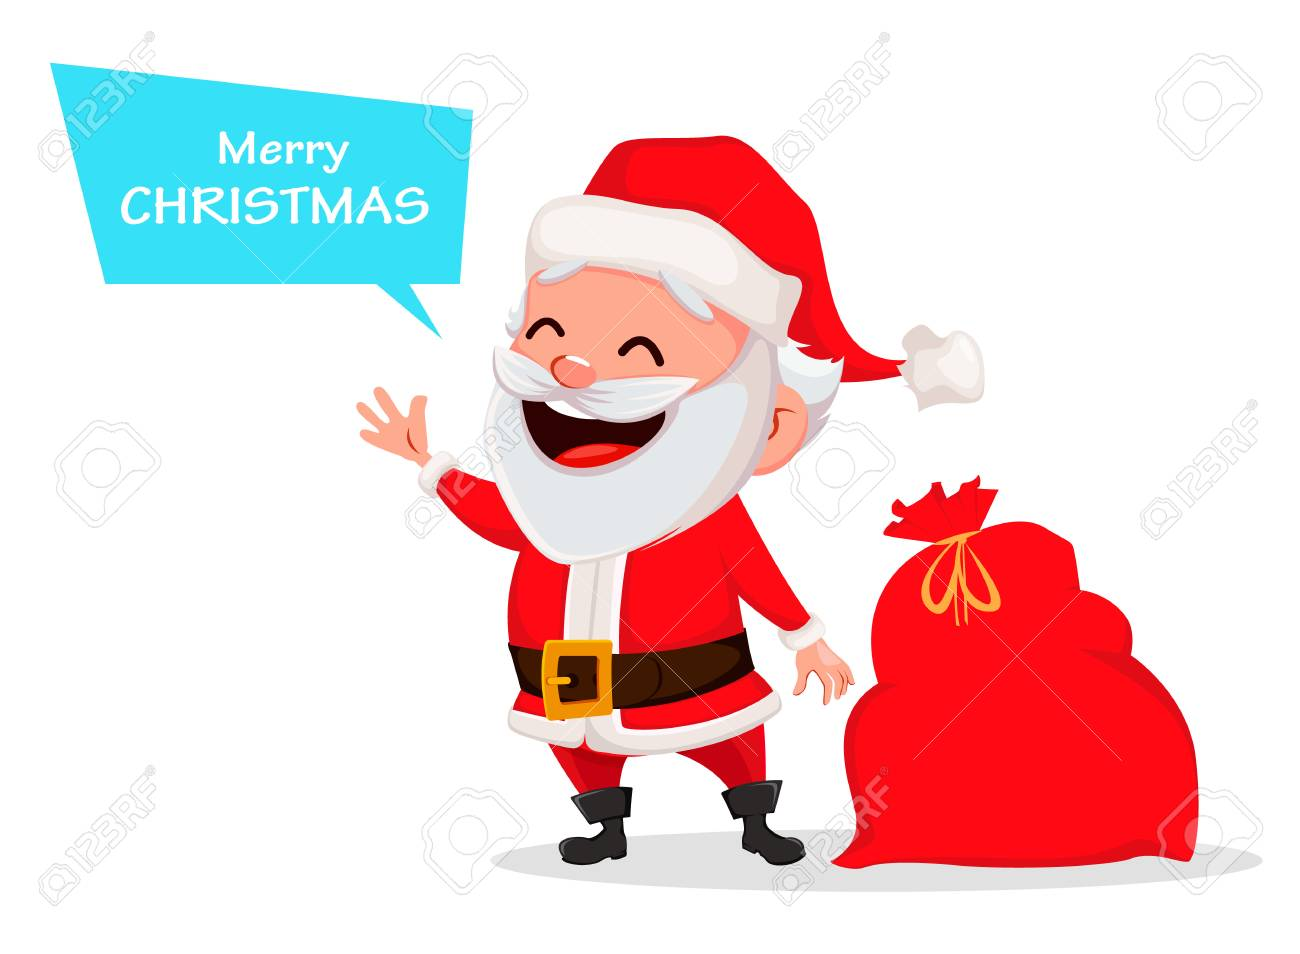 Merry Christmas Funny Images.Merry Christmas Funny Santa Claus Cheerful Cartoon Character